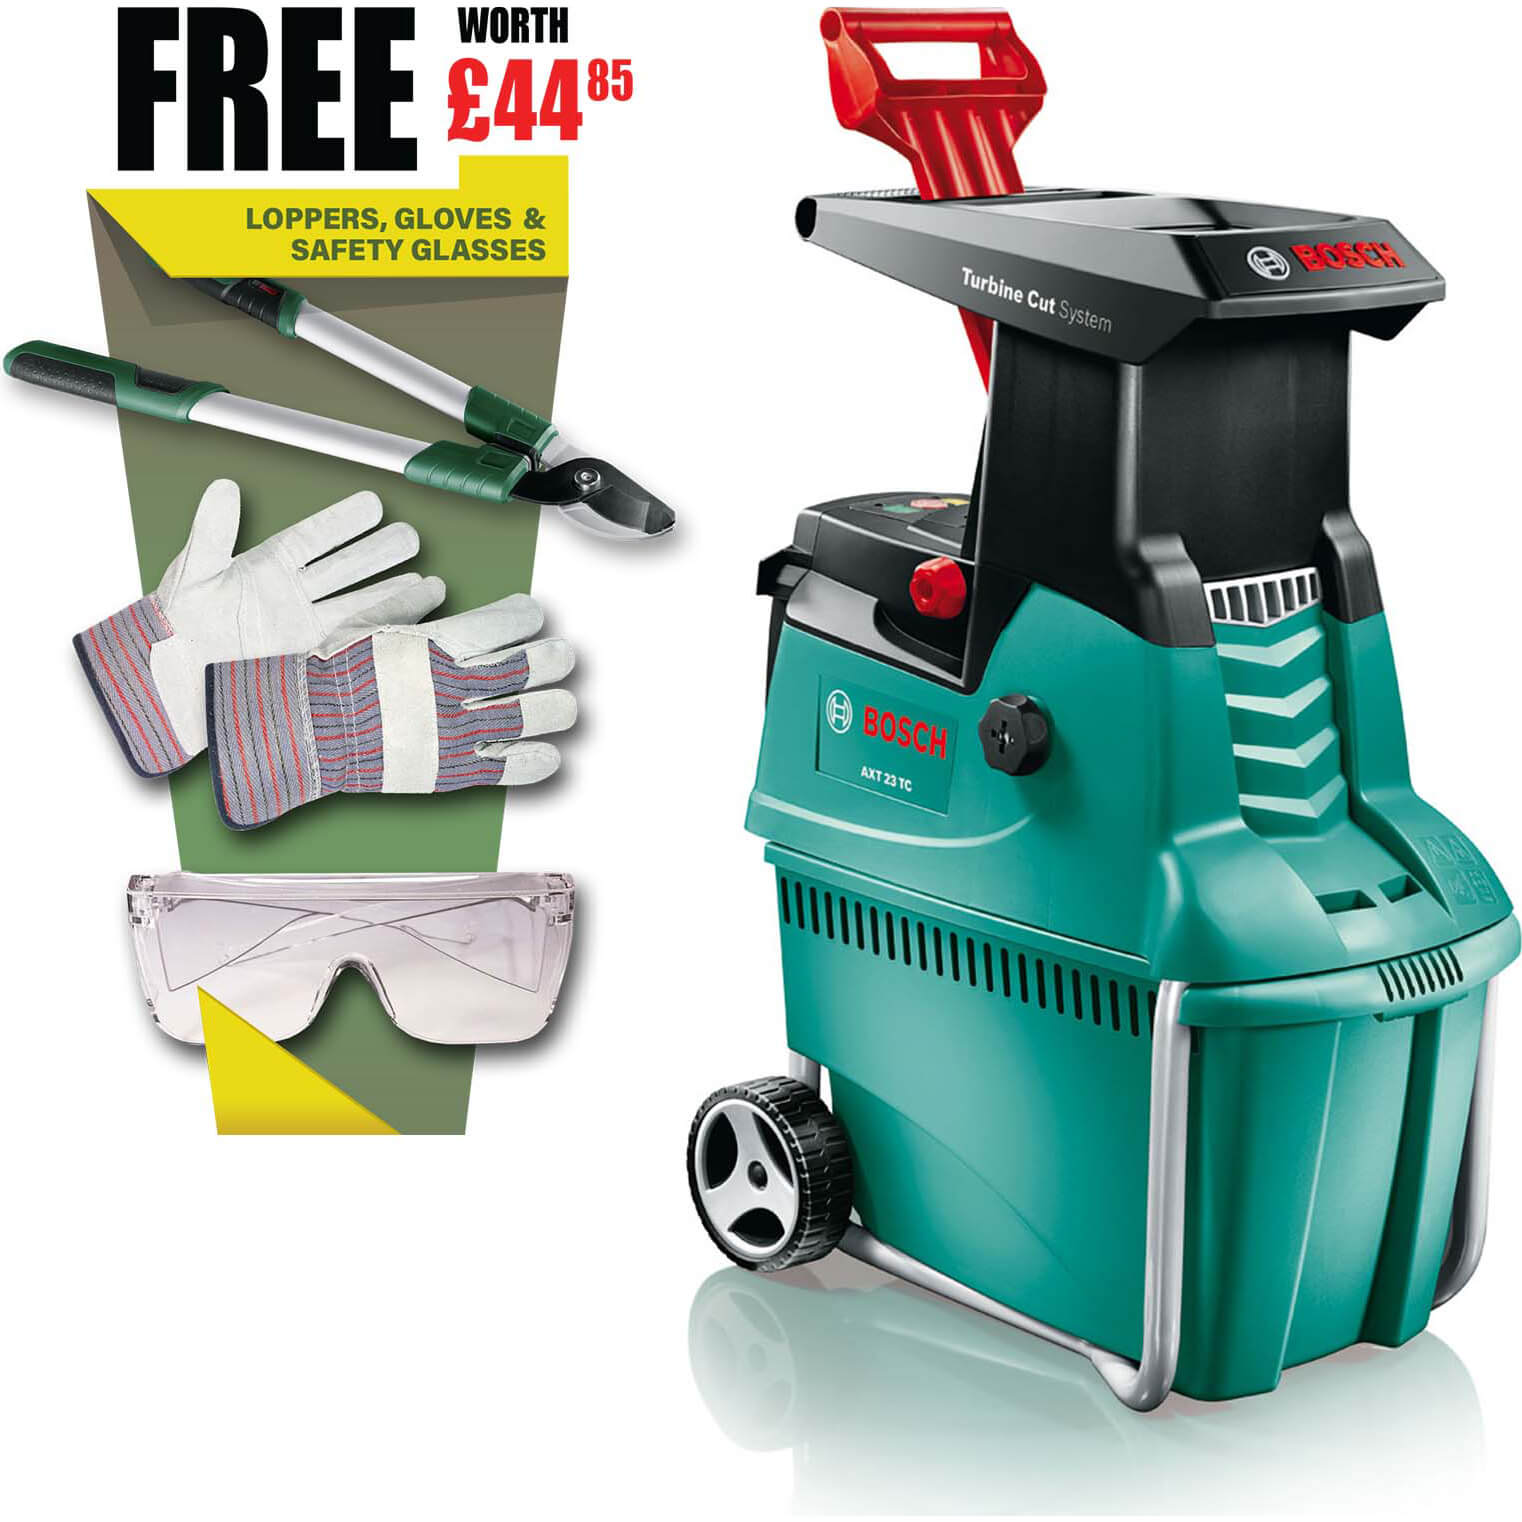 bosch axt 25 tc turbine cutting 3 in 1 garden shredder 45mm capacity 2500w 240v free fiskars. Black Bedroom Furniture Sets. Home Design Ideas